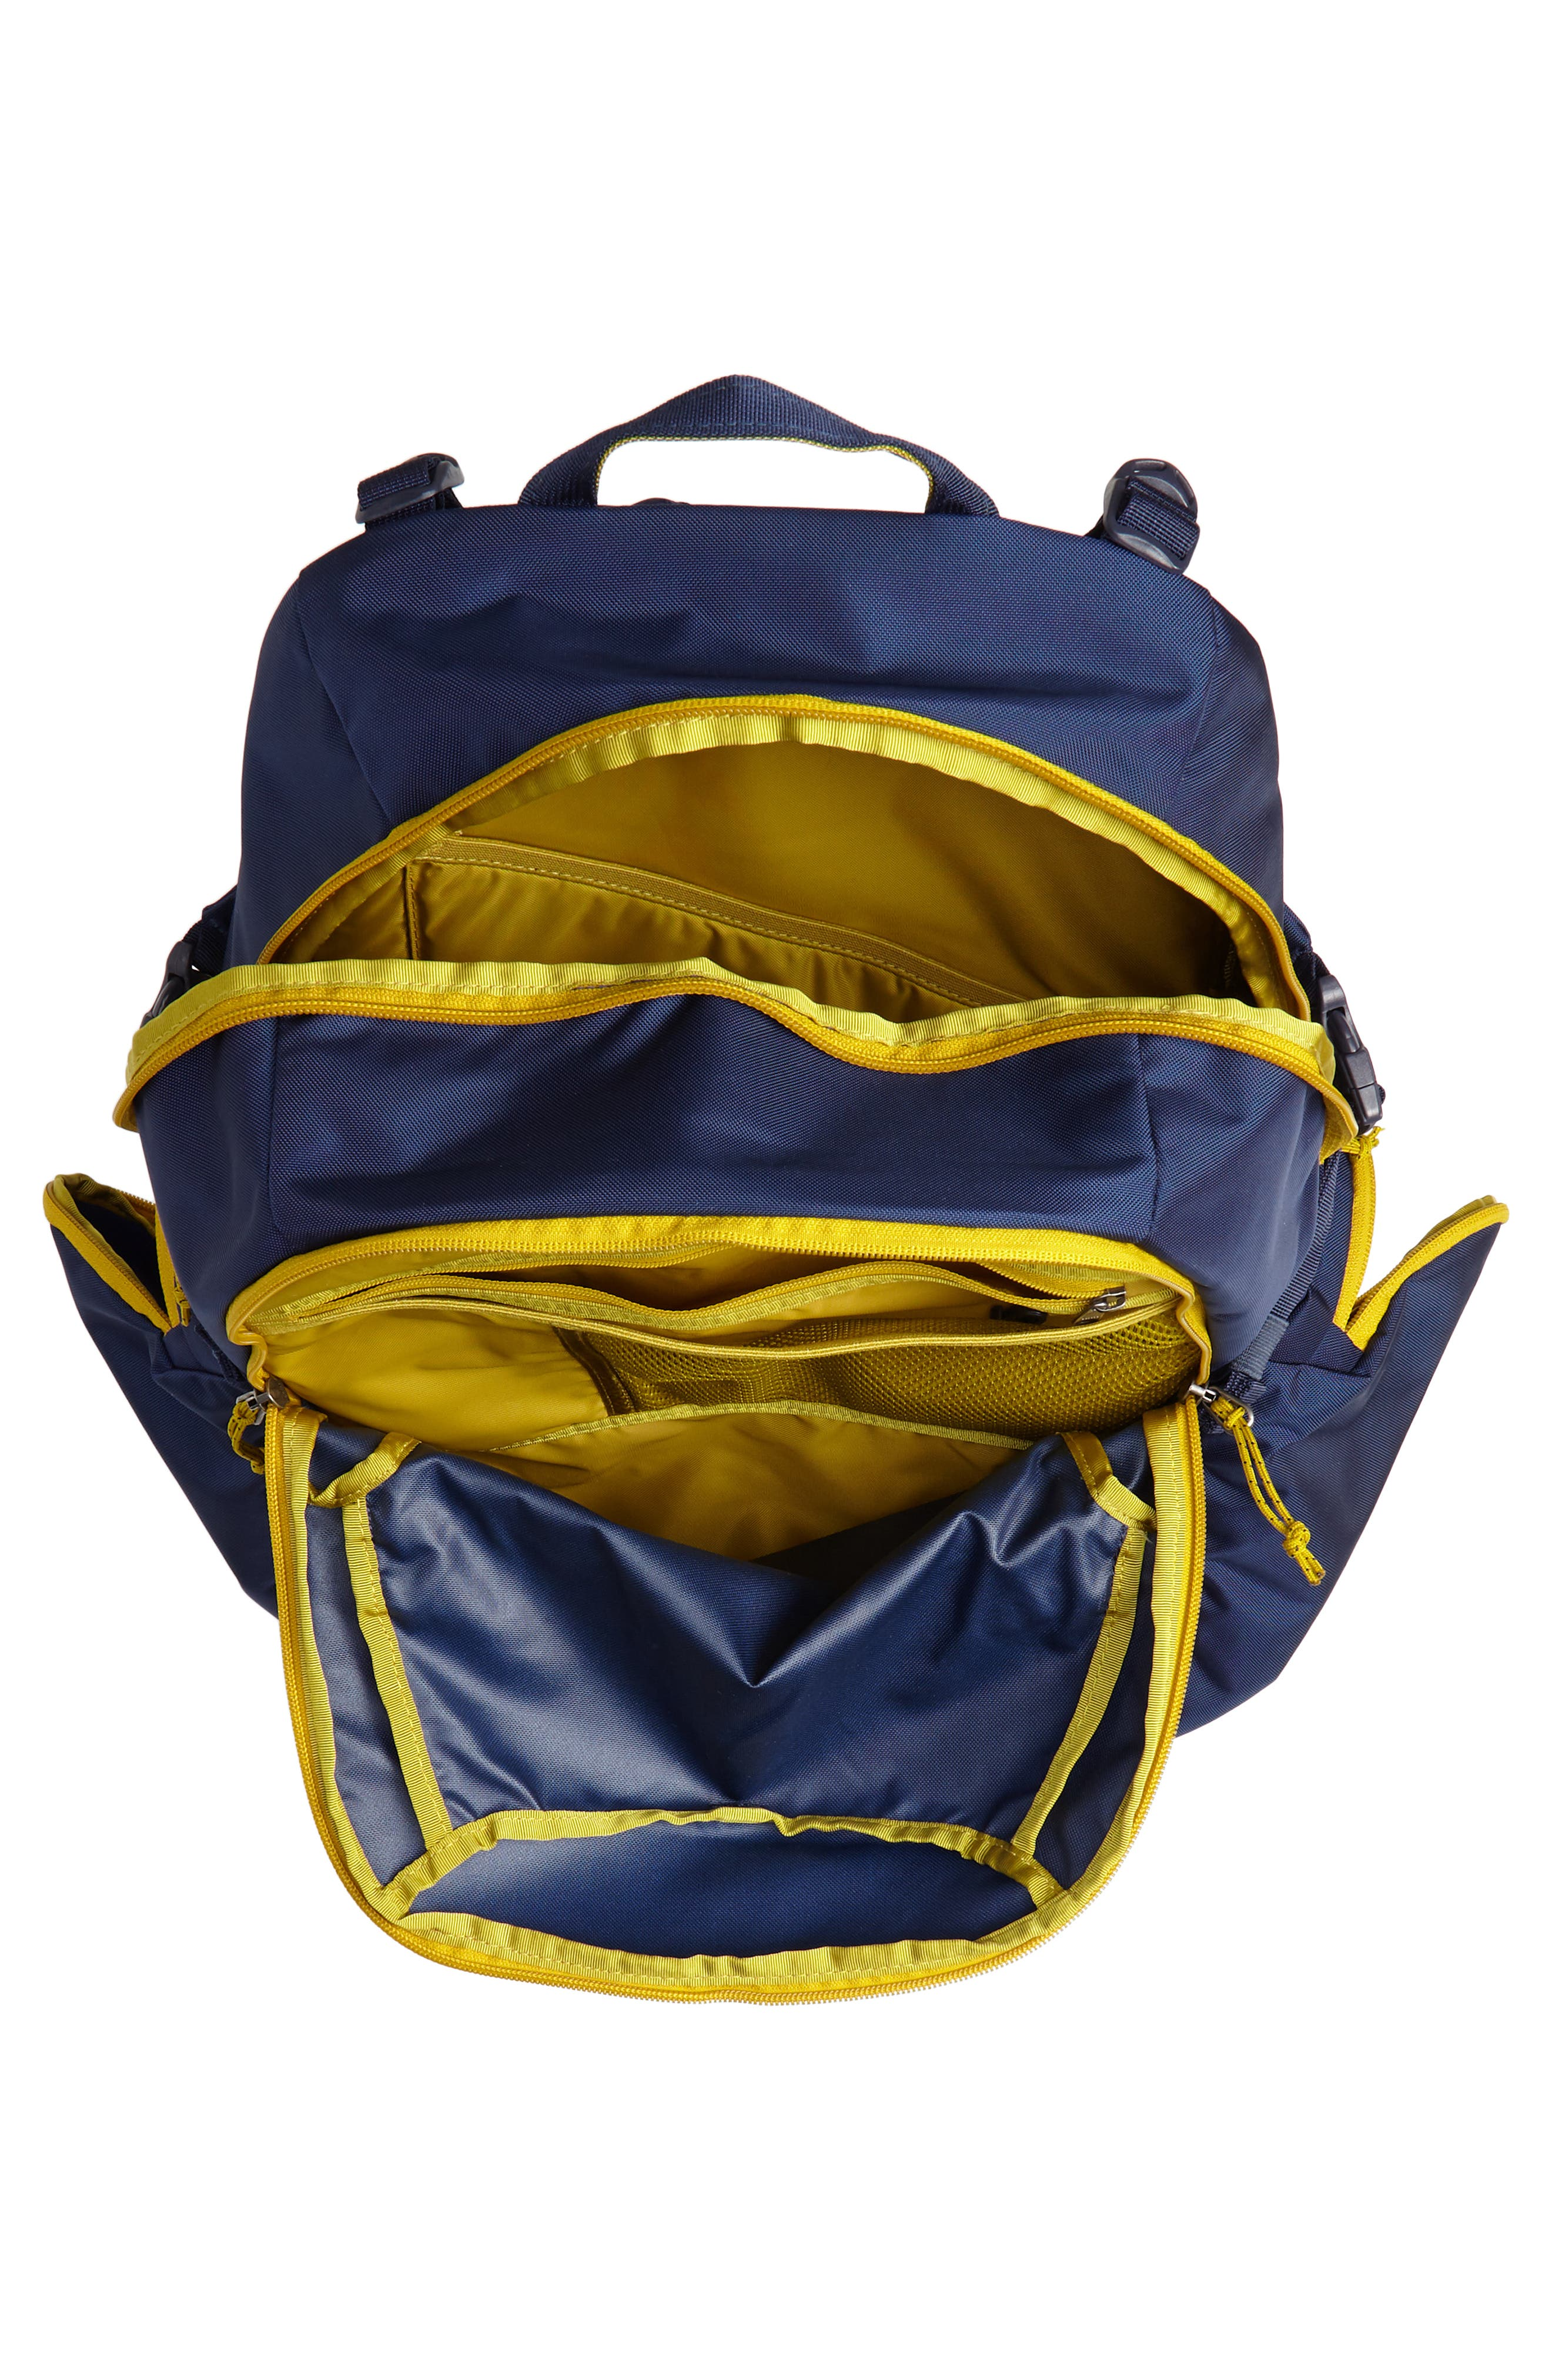 Paxat 32-Liter Backpack,                             Alternate thumbnail 4, color,                             CLASSIC NAVY